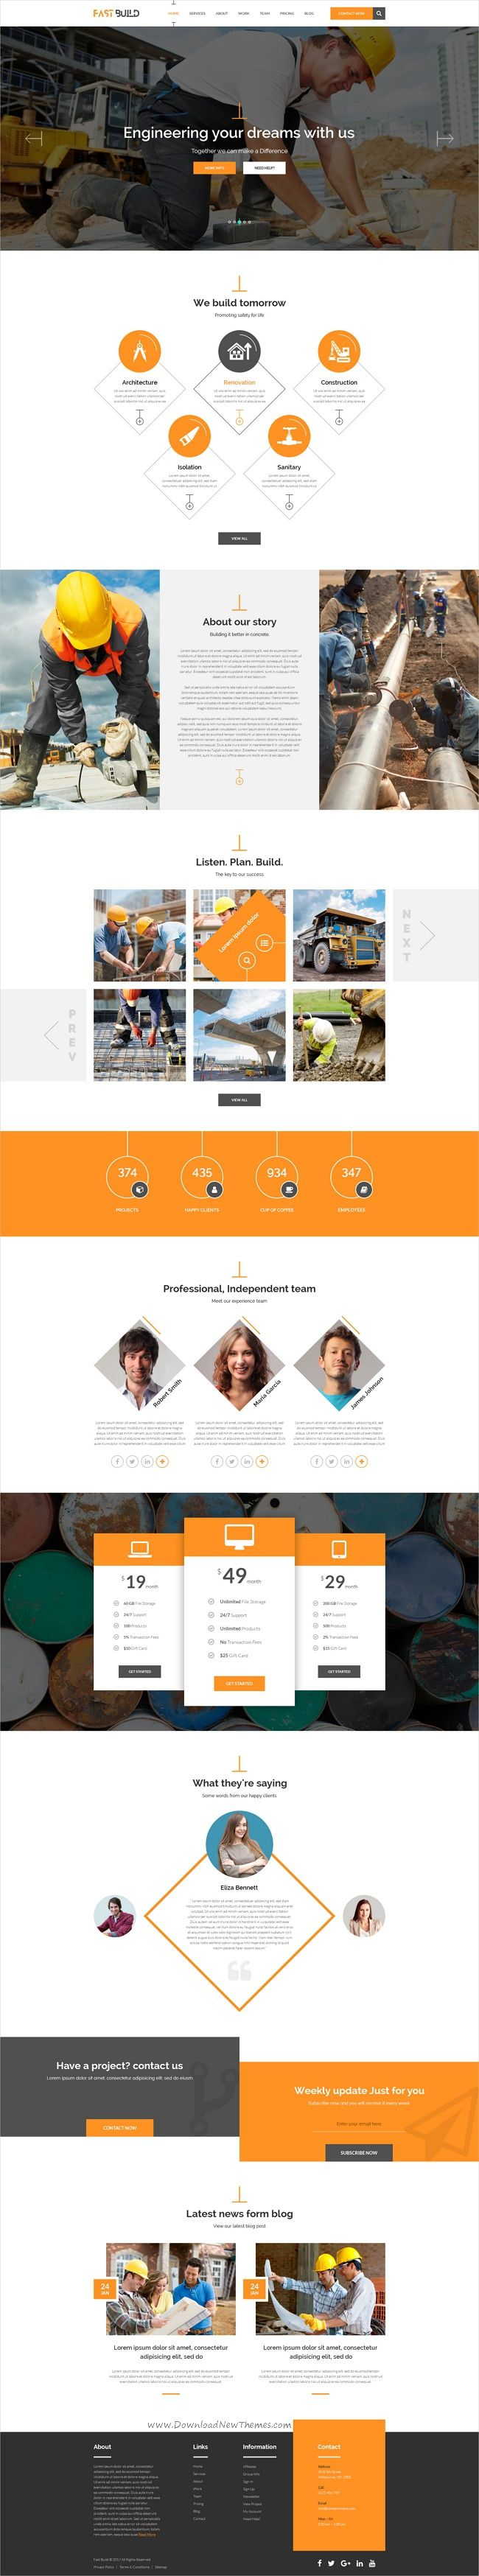 Fast desk is a professional and modern design #PSD template for stunning #construction #company website with 4 multipurpose homepage layouts download now➩ https://themeforest.net/item/fast-desk-office-food-charity-and-industry-psd-templates/19276717?ref=Datasata